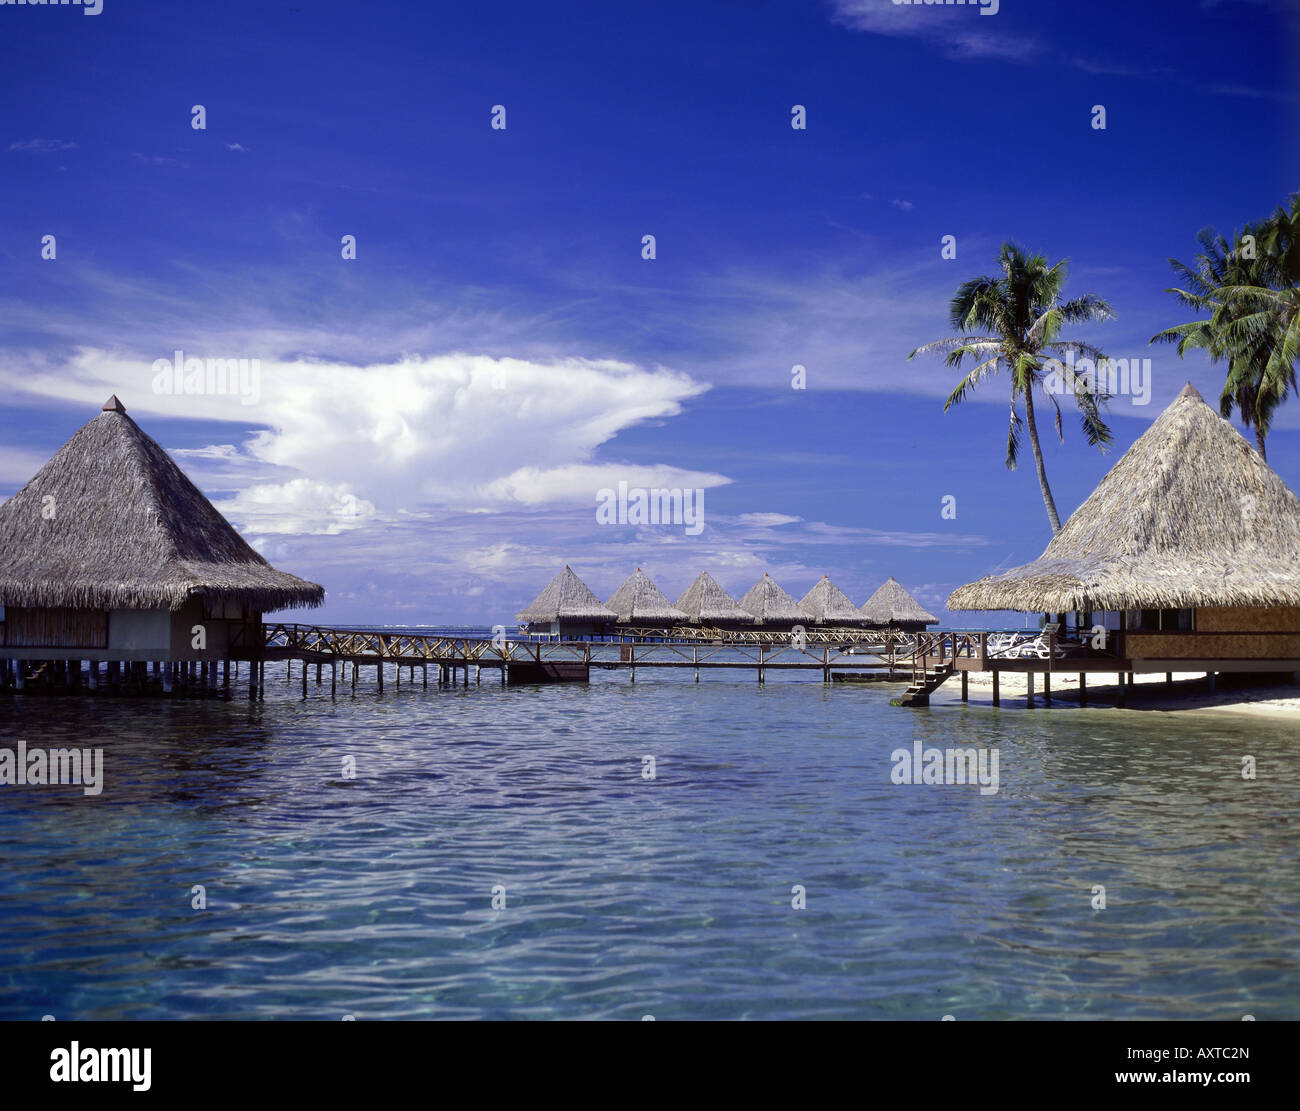 Bali Hai Stock Photos Amp Bali Hai Stock Images Alamy